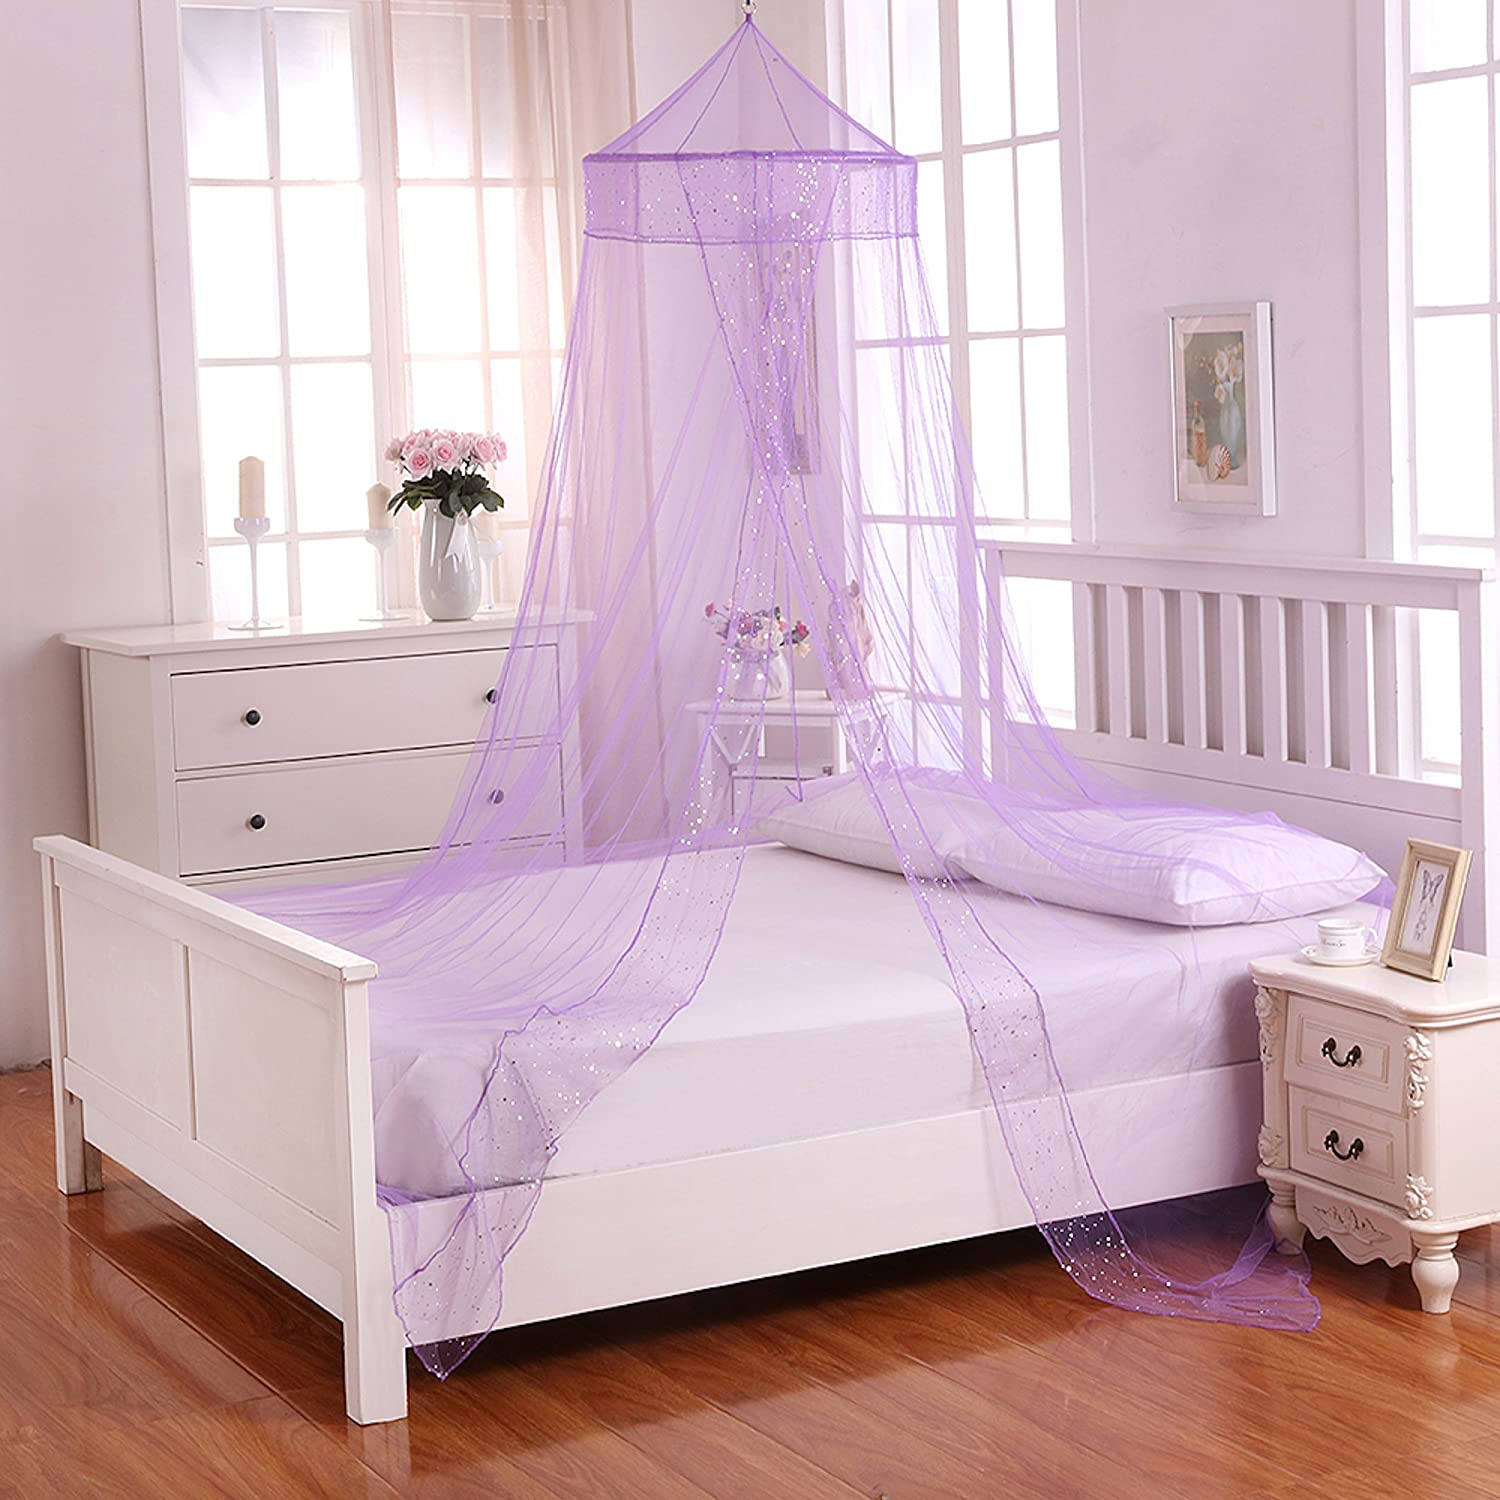 - Amazon.com: Fantasy Kids Galaxy Kids Collapsible Hoop Sheer Bed